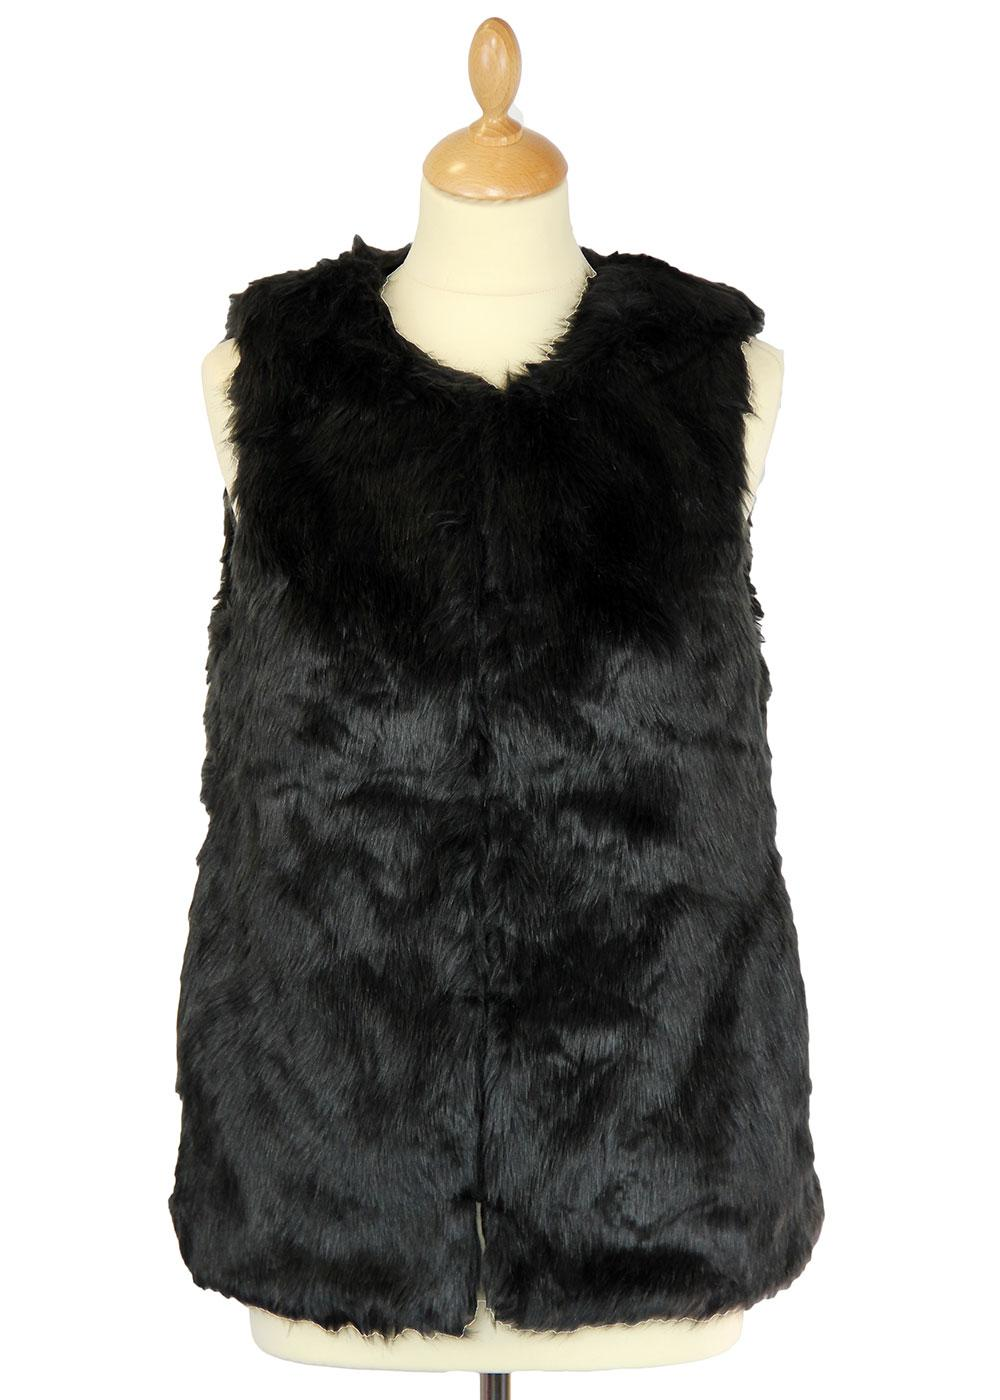 Texas DESIGNER DUCHESS Retro 60s Faux Fur Gilet